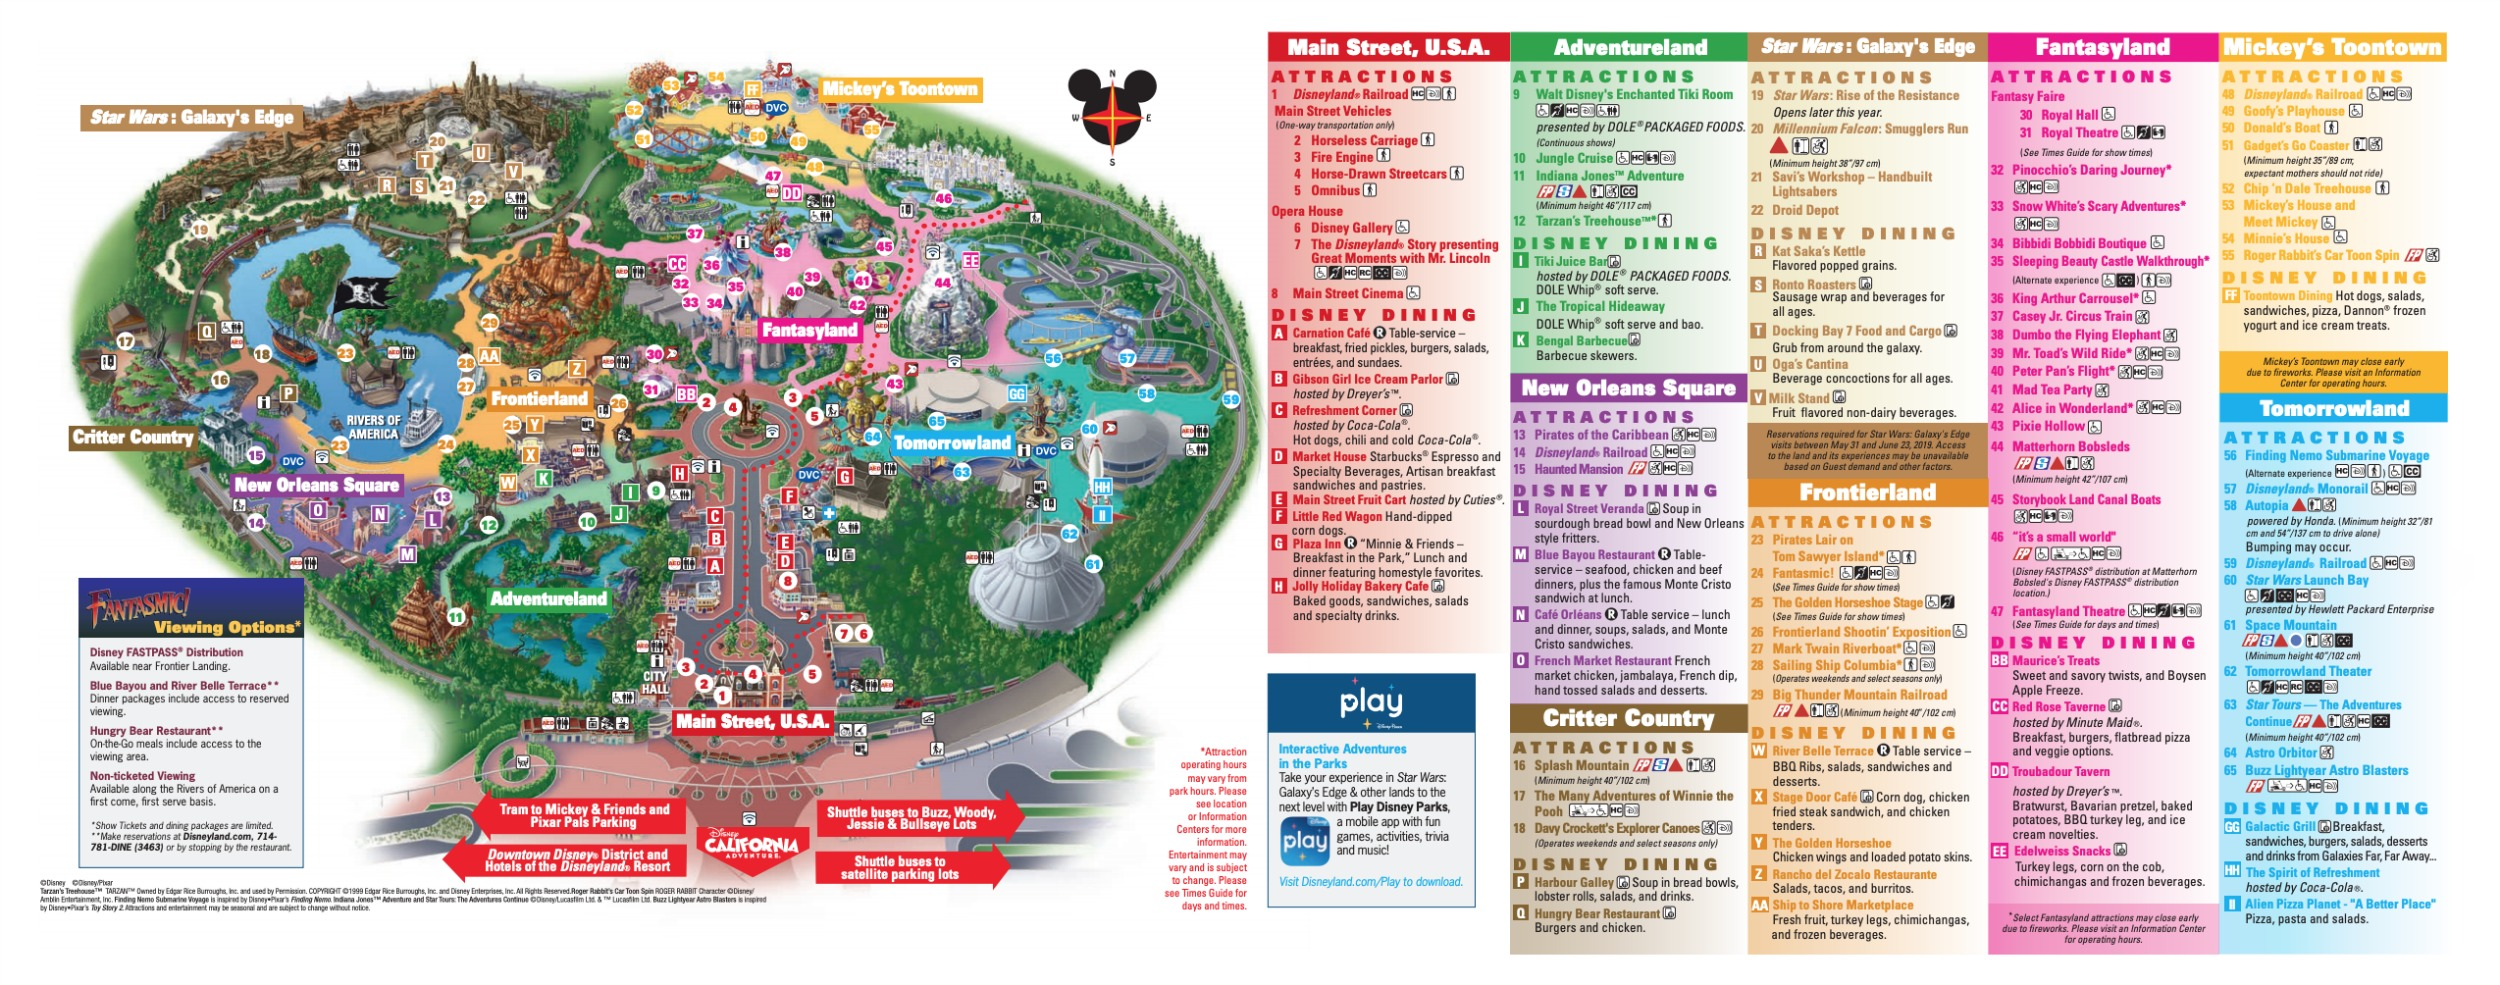 Disneyland Park Map in California, Map of Disneyland on